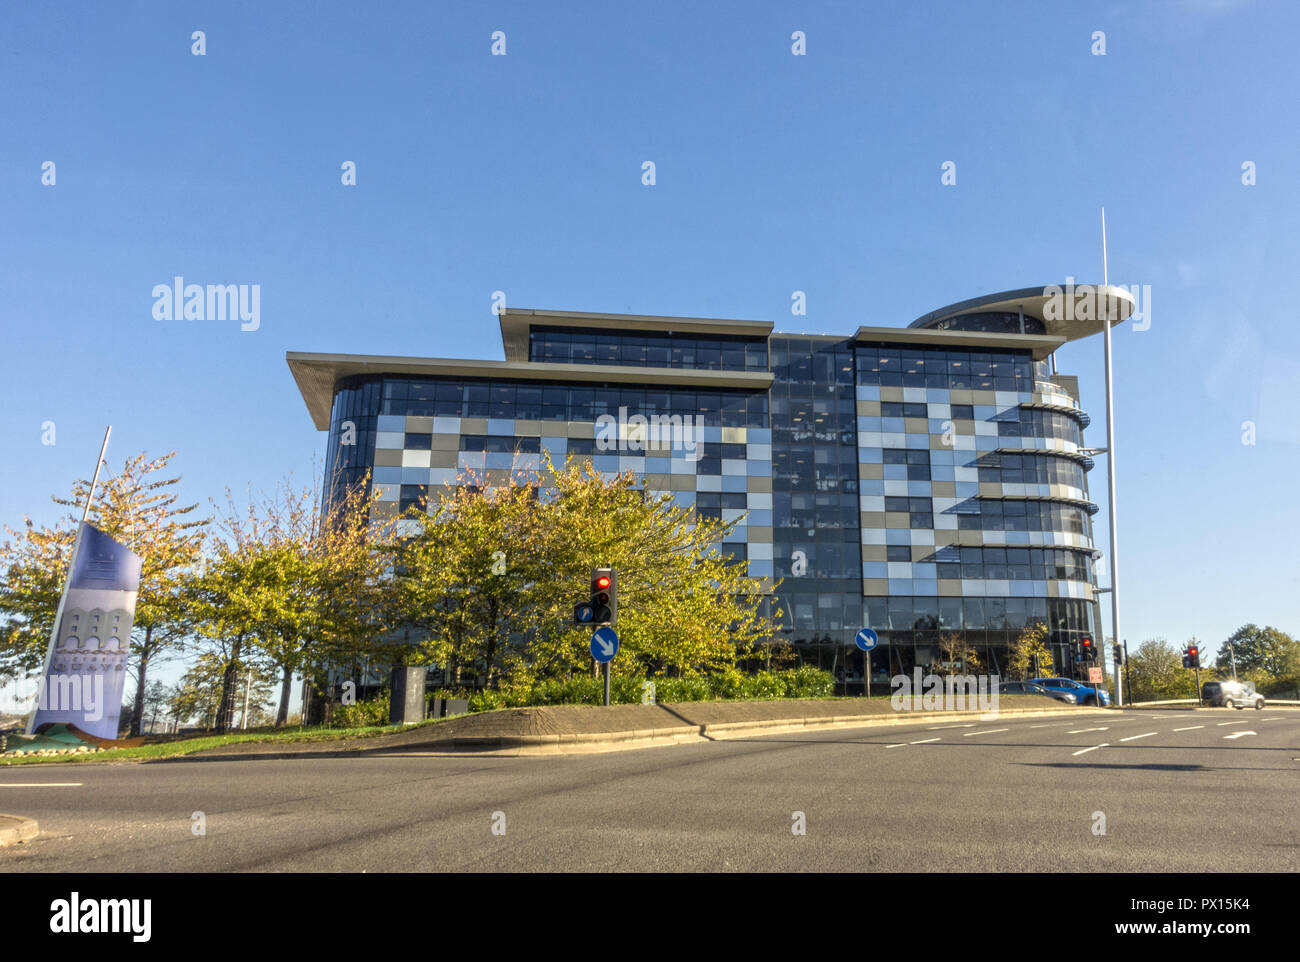 Capita Hartshead office building in Sheffield, England - Stock Image